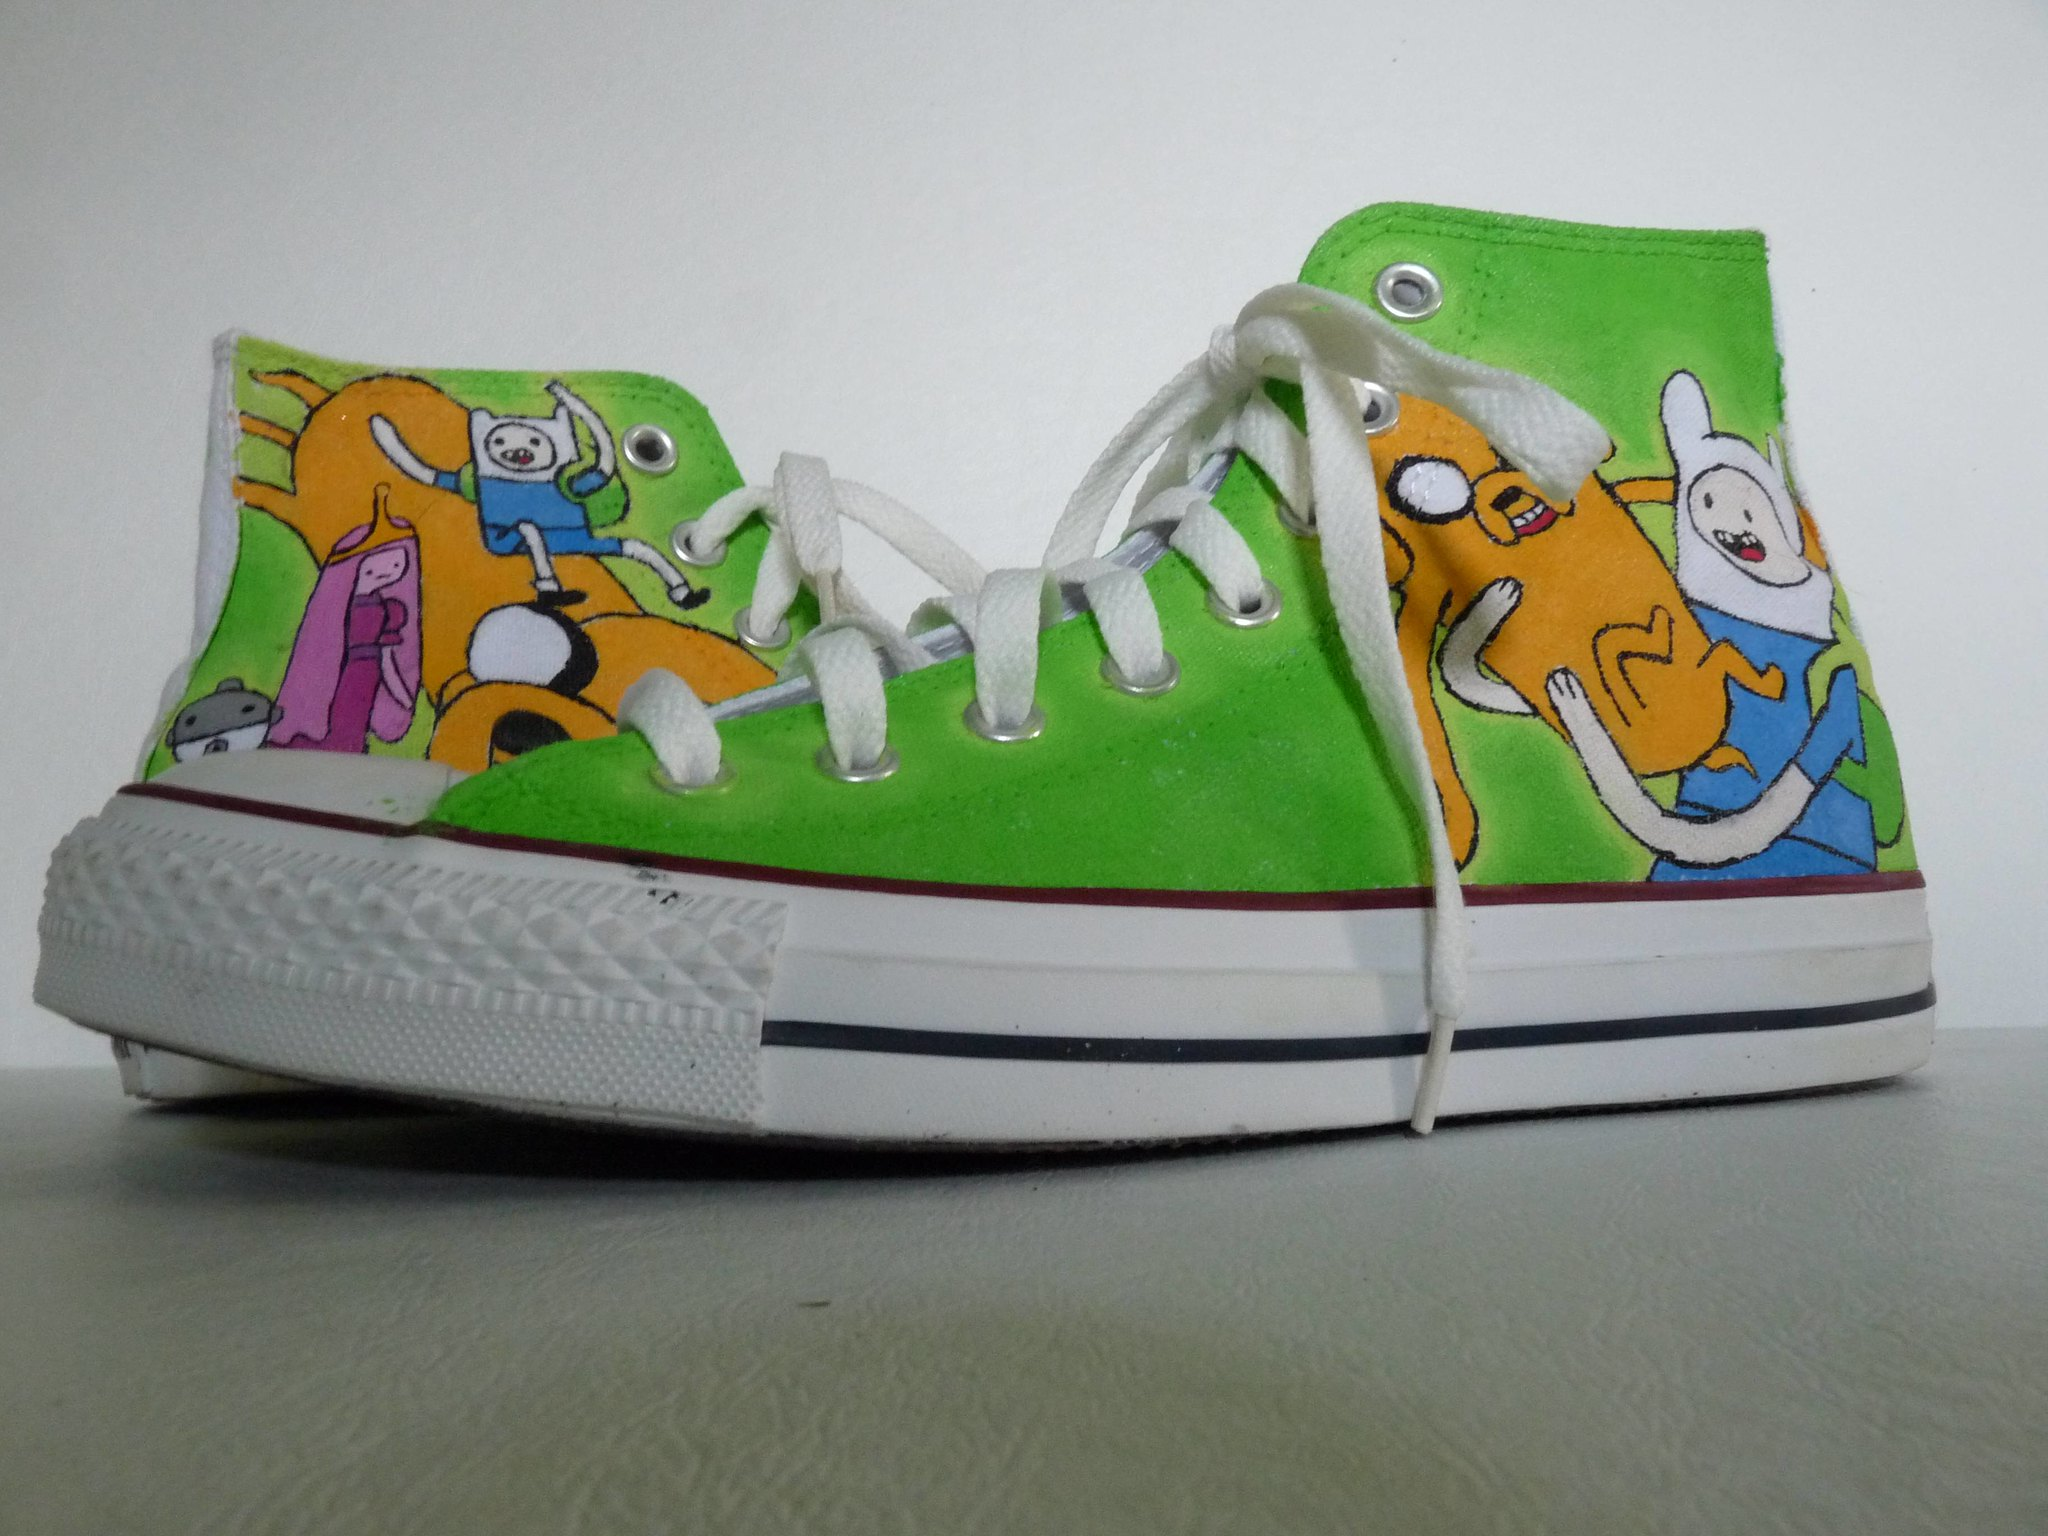 Adventure Time sneakers by SheriffKarli